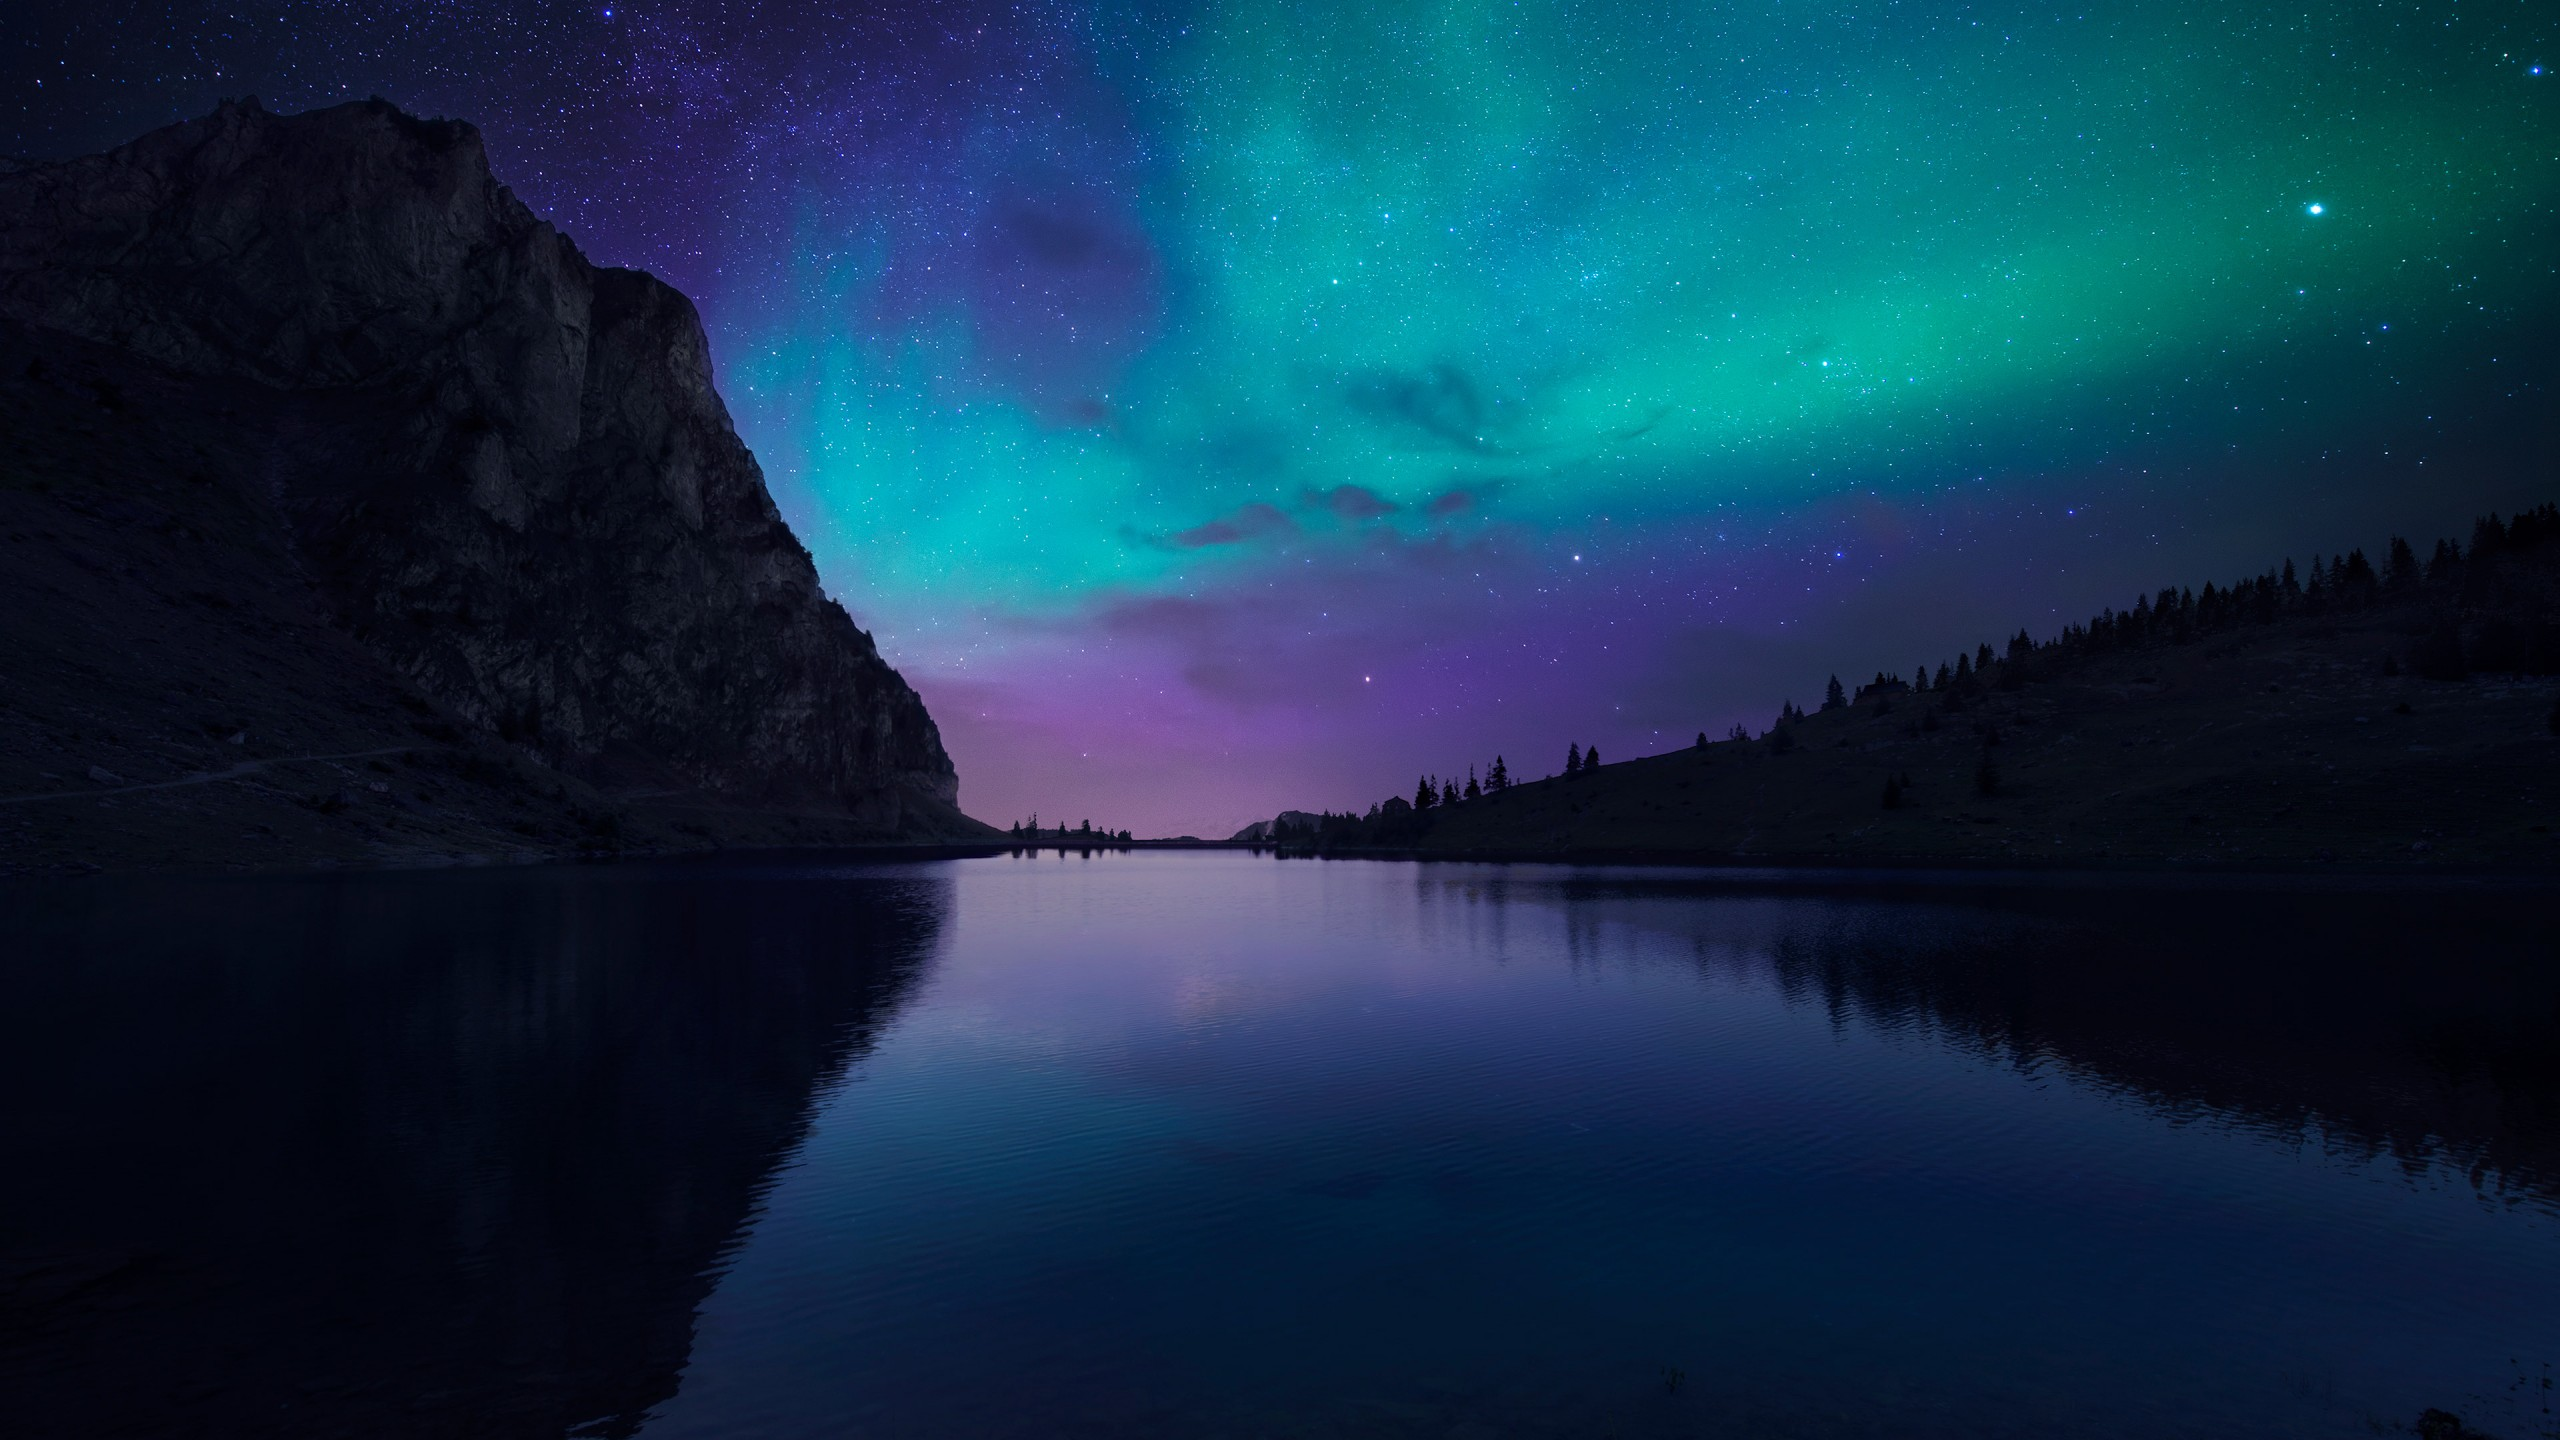 Wallpaper Lake Aurora 4k Hd Florida Night